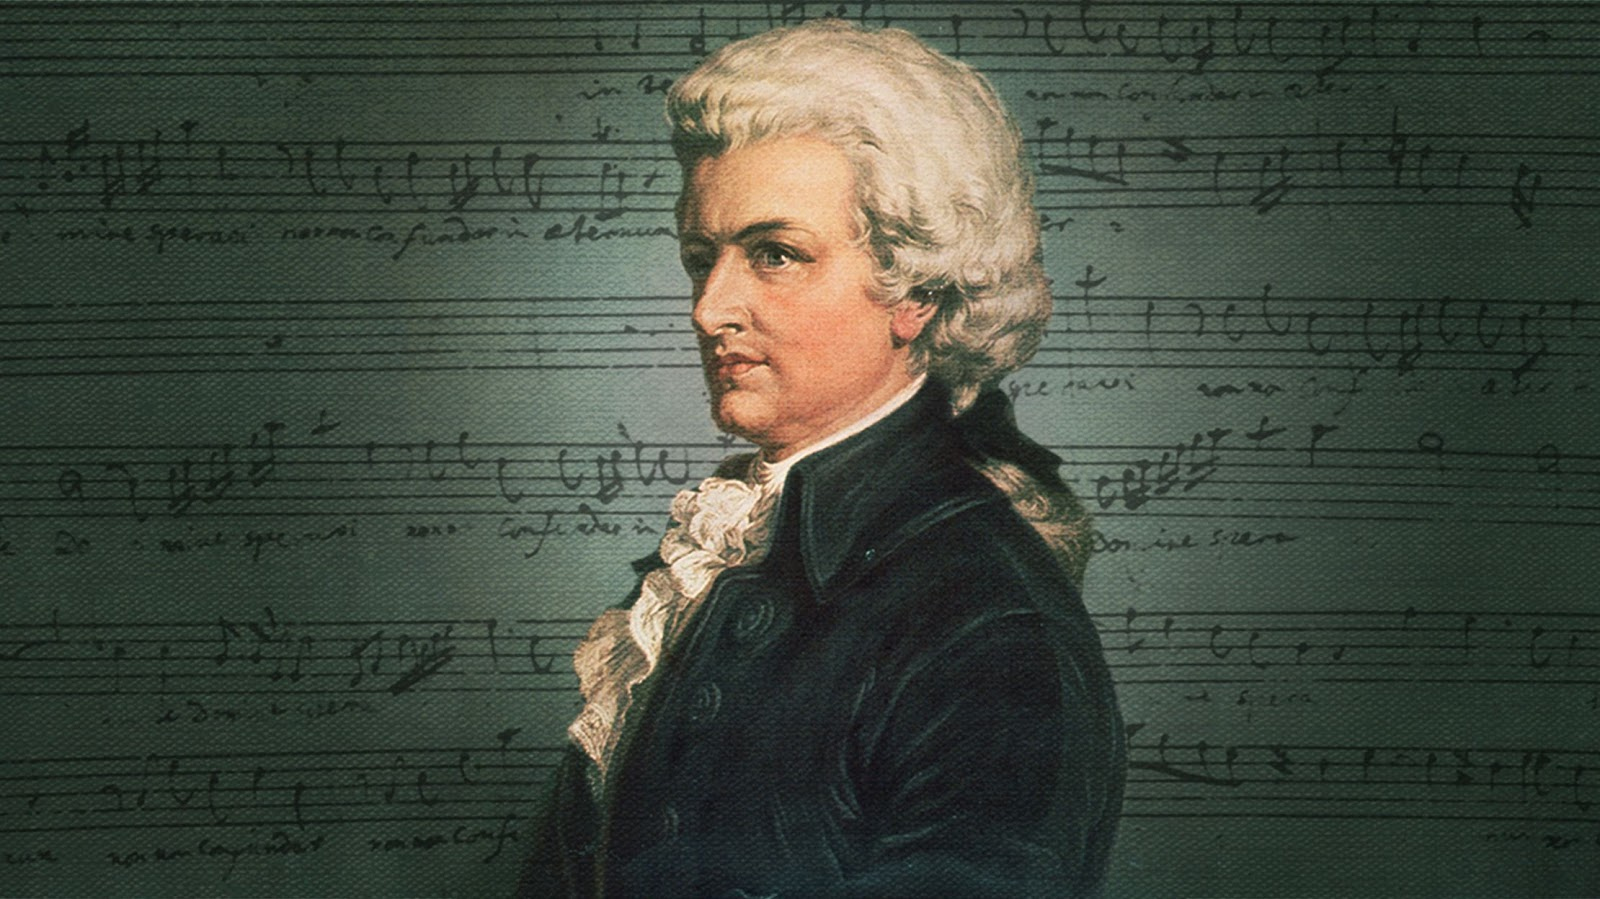 A portrait of Mozart in front of green sheet music.